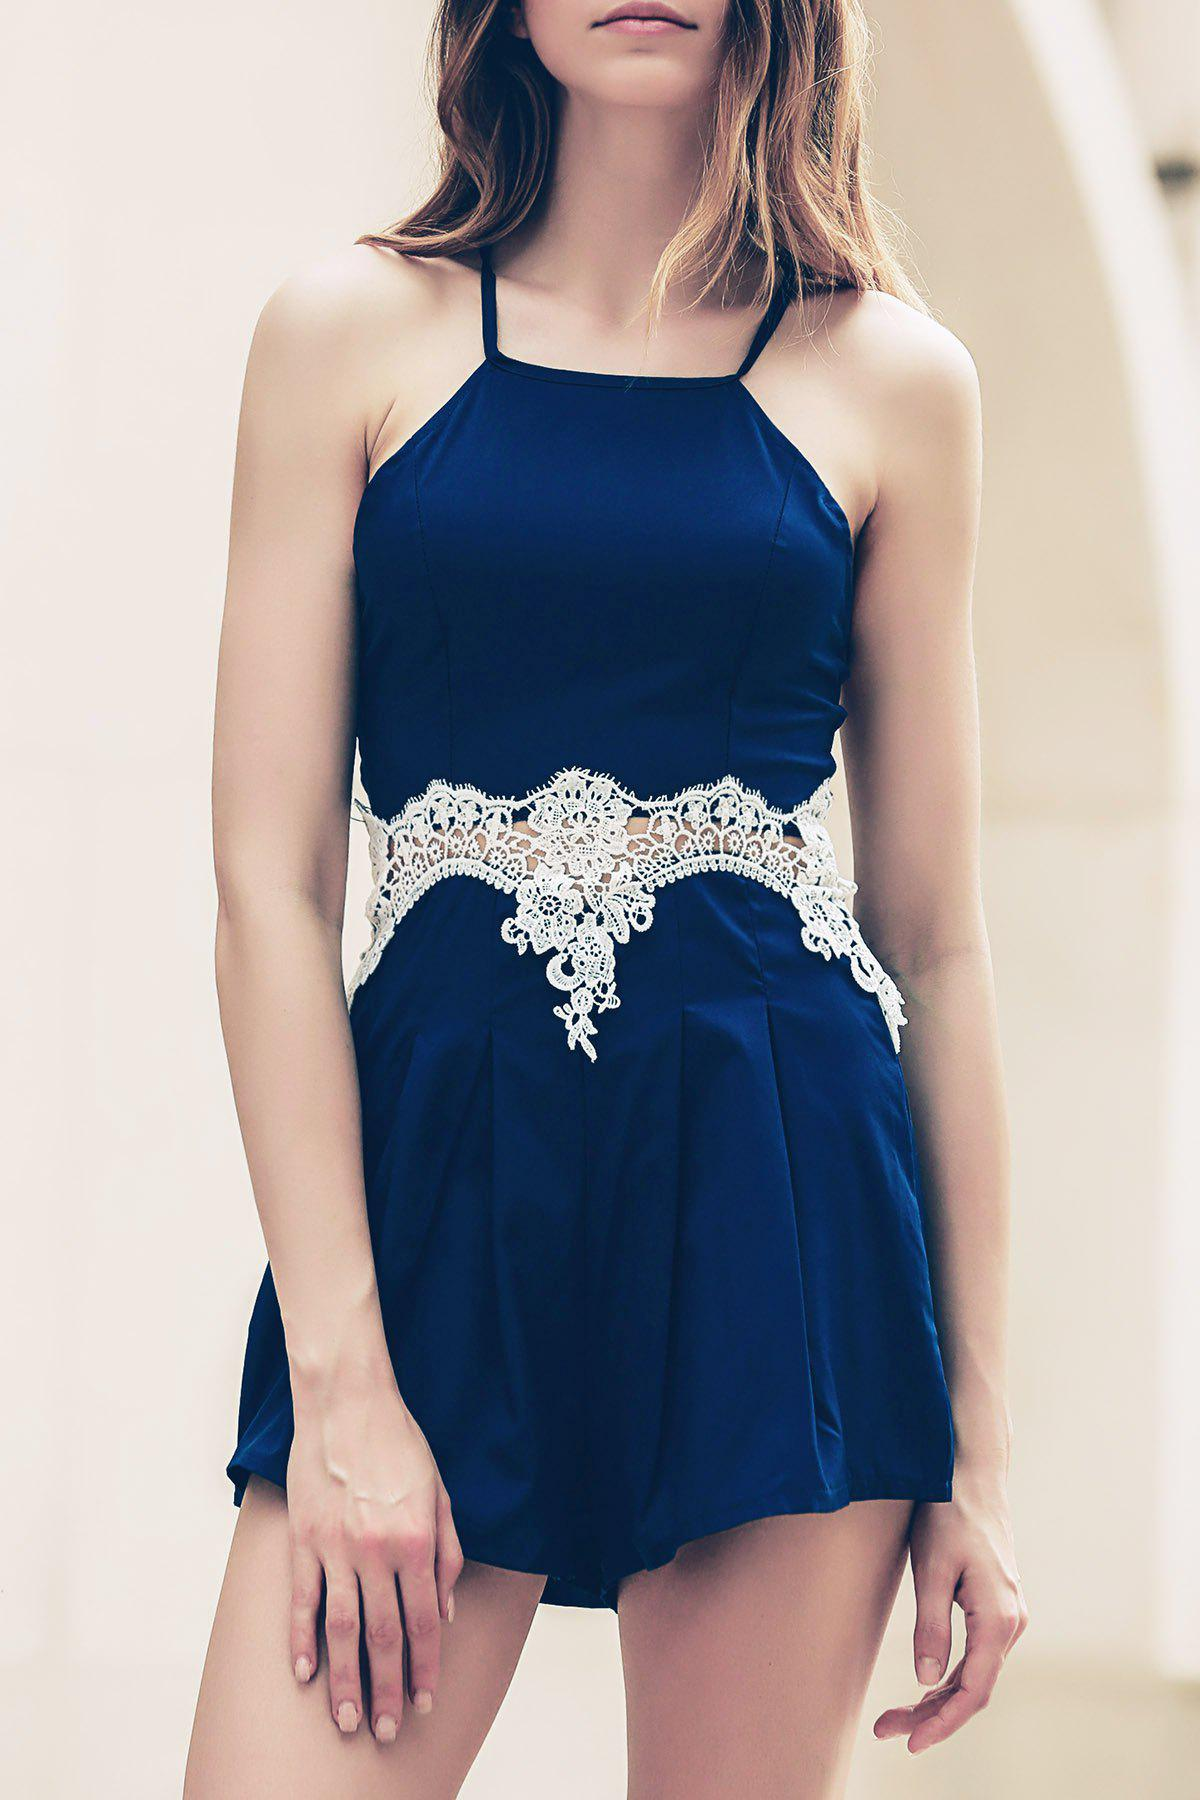 Strappy Lace Insert Zippered Romper - CADETBLUE S